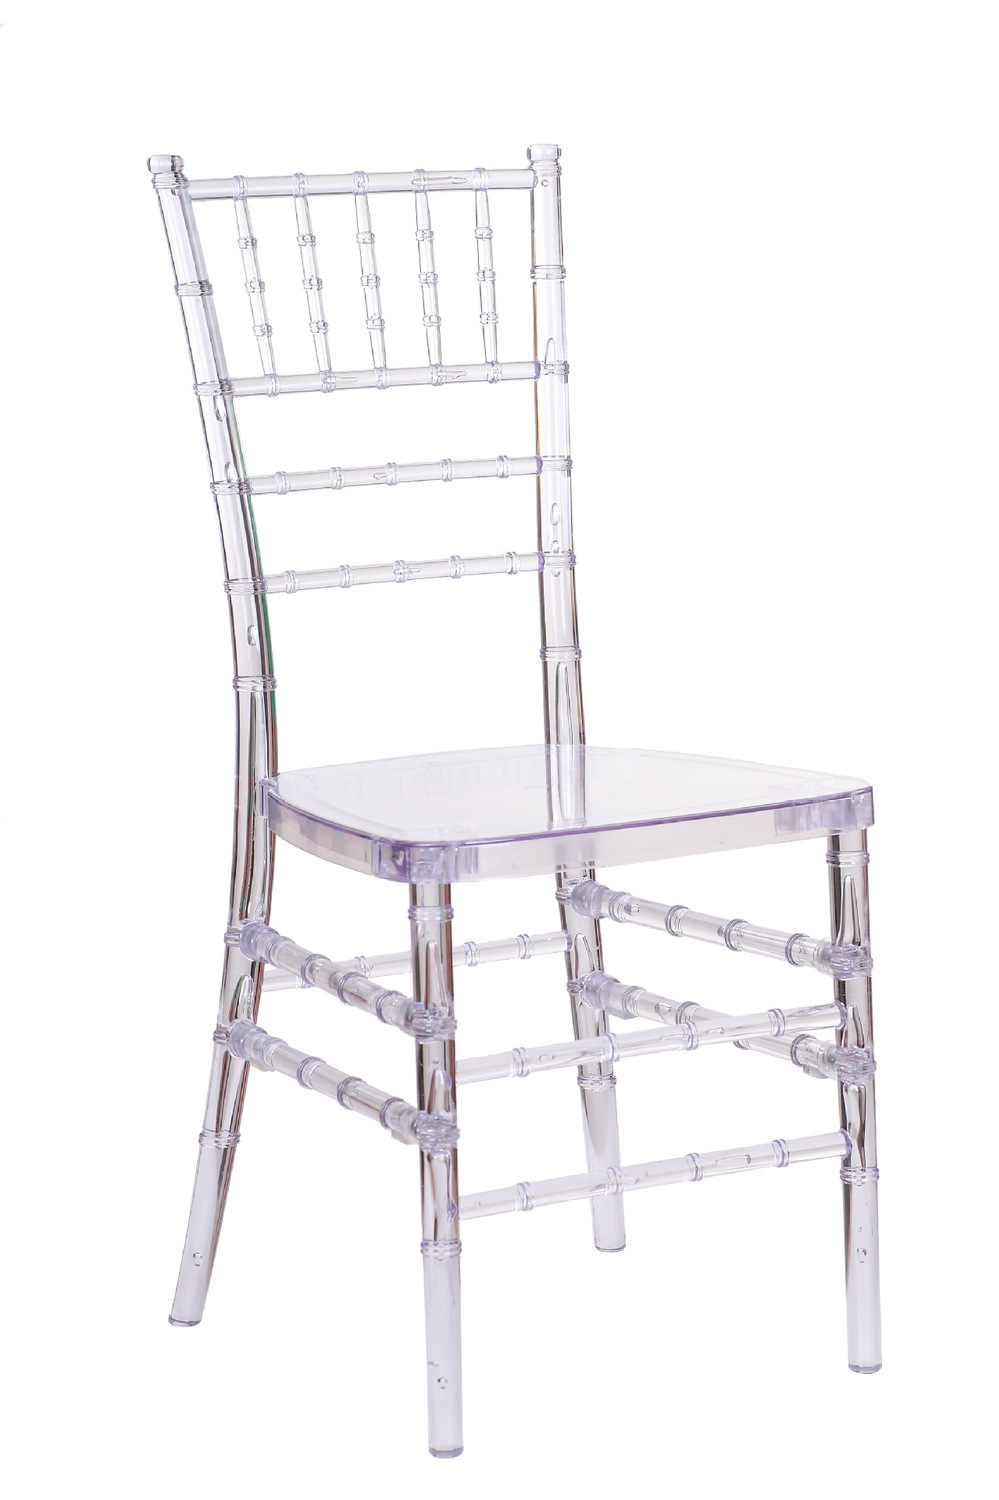 Cheap Promotional Outlet Tiffany Chairs Outdoor Wedding Chair Bamboo Chair Ch